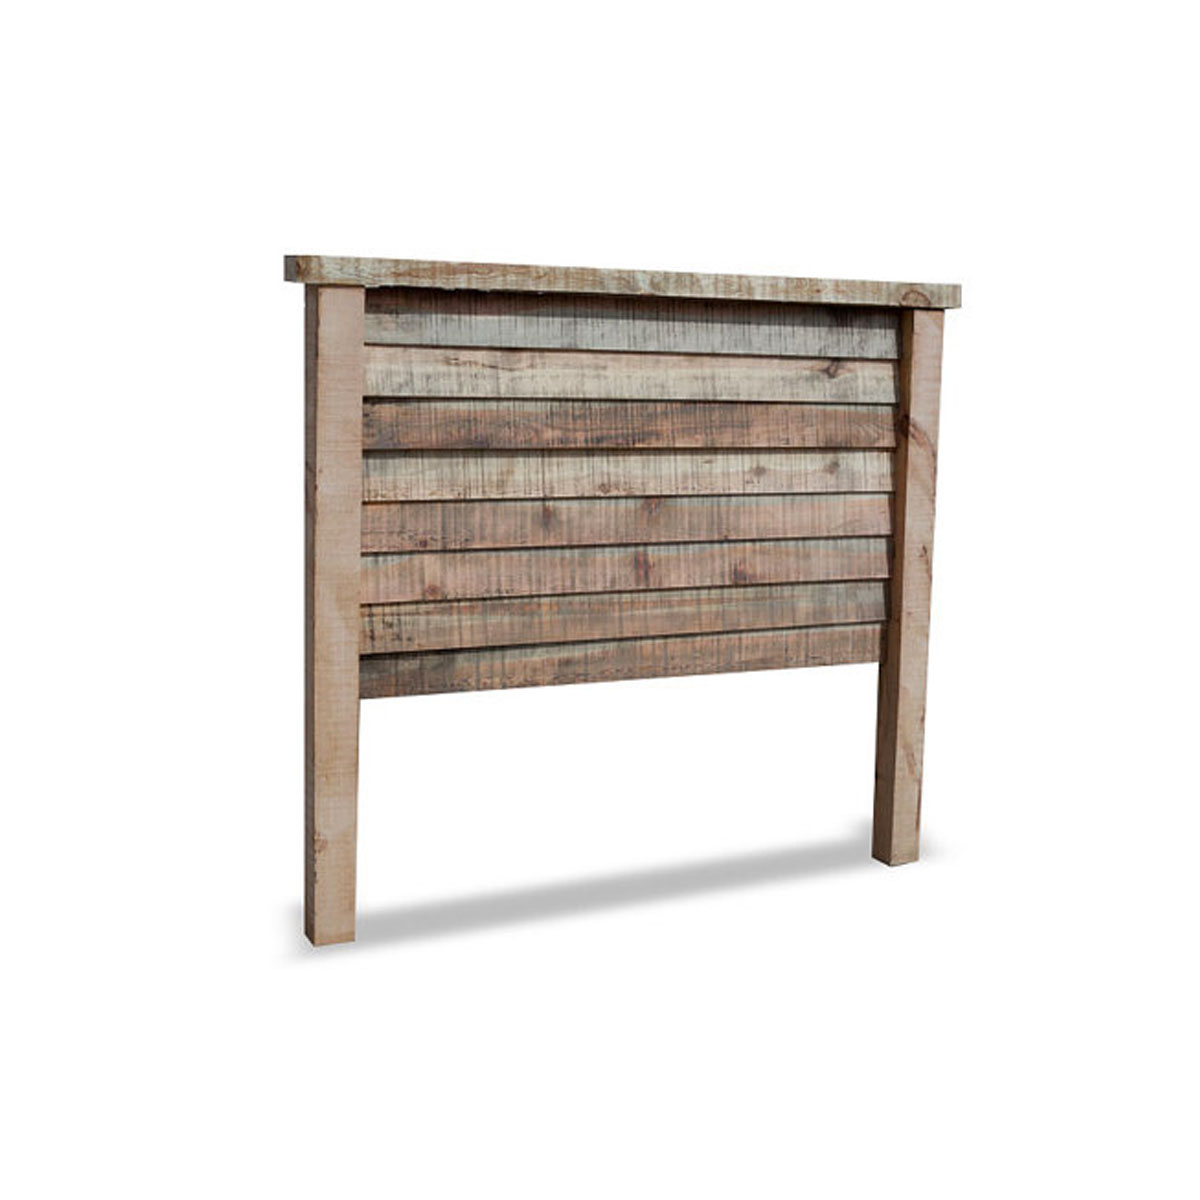 Purchase natural barnwood bed online rustic headboard for Reclaimed wood online